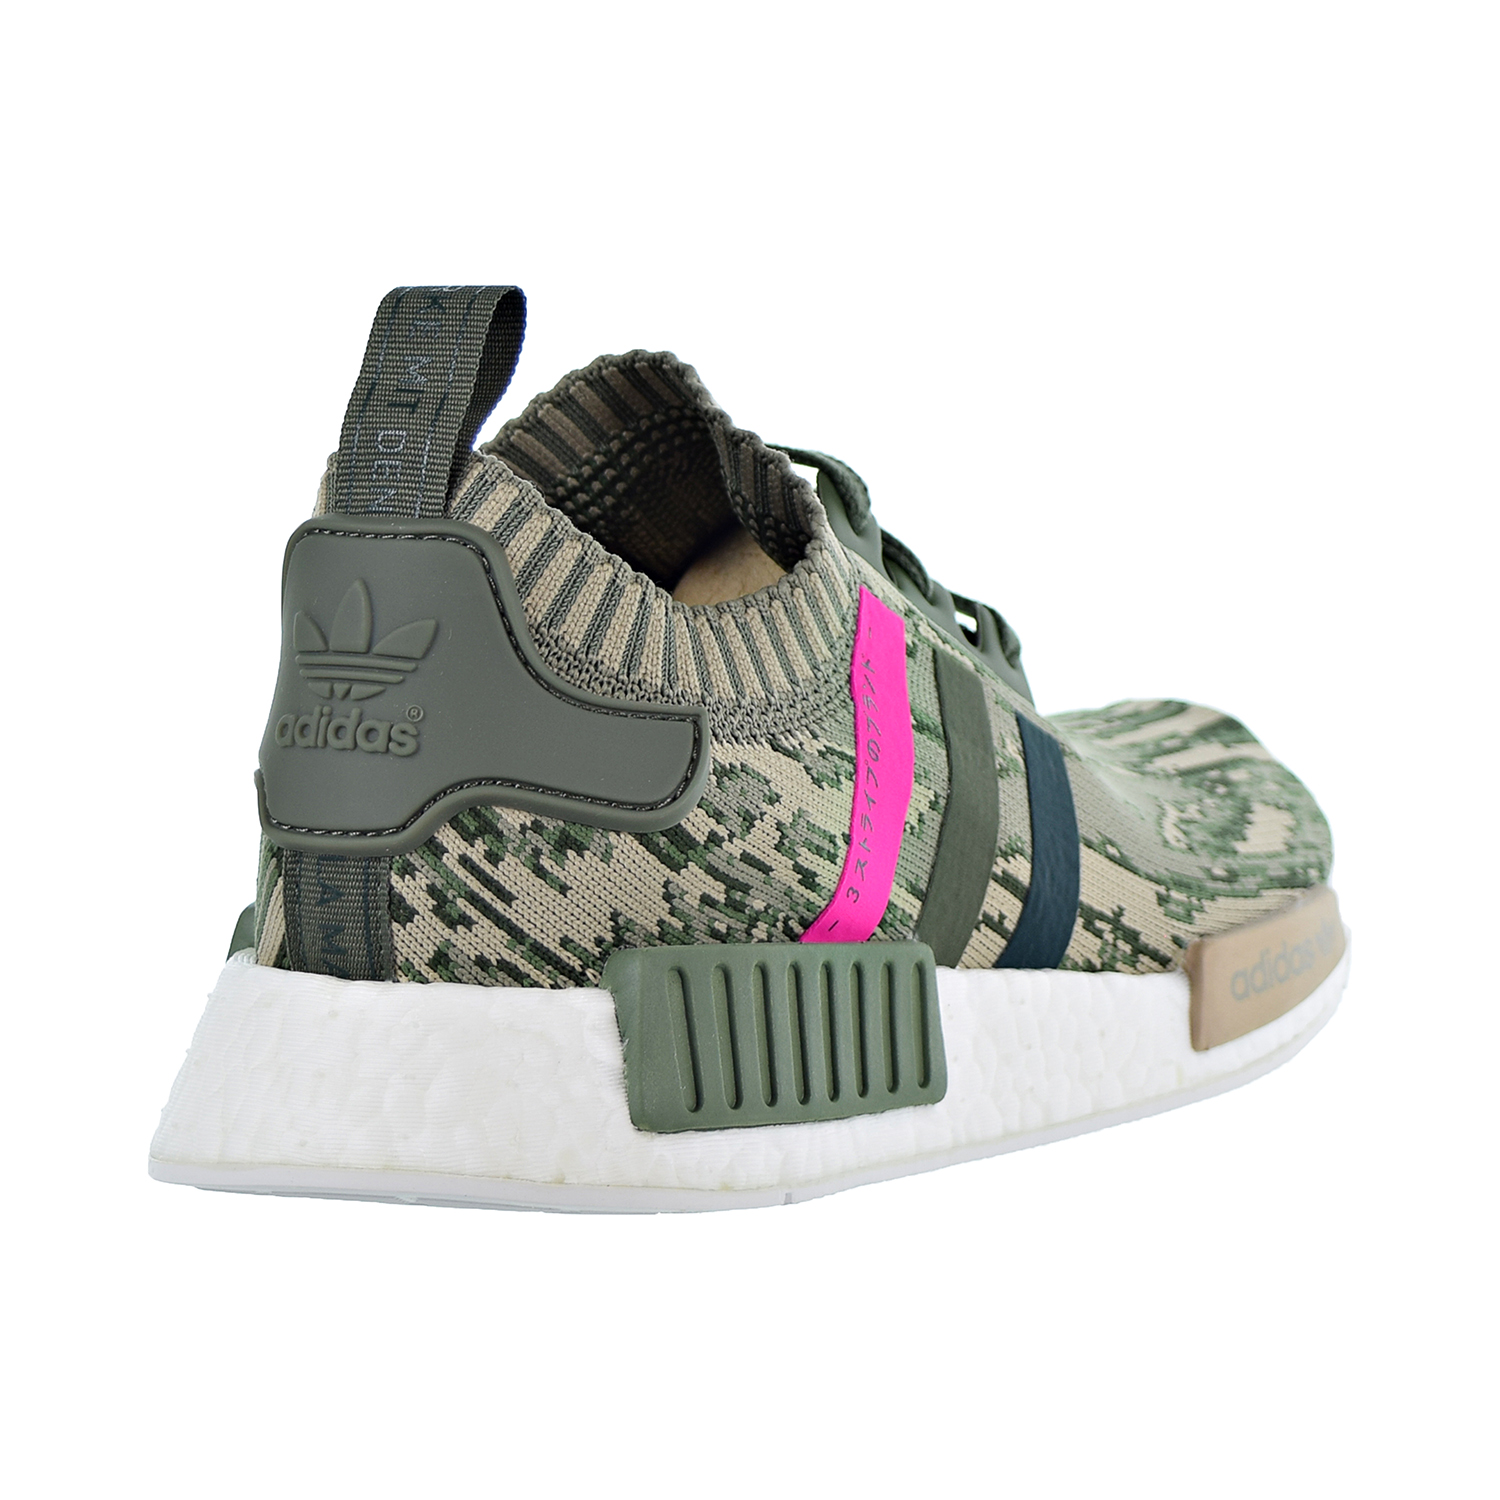 eef8c3142a9a9 Adidas NMD R1 Primeknit Women s Shoes Green Pink Green BY9864